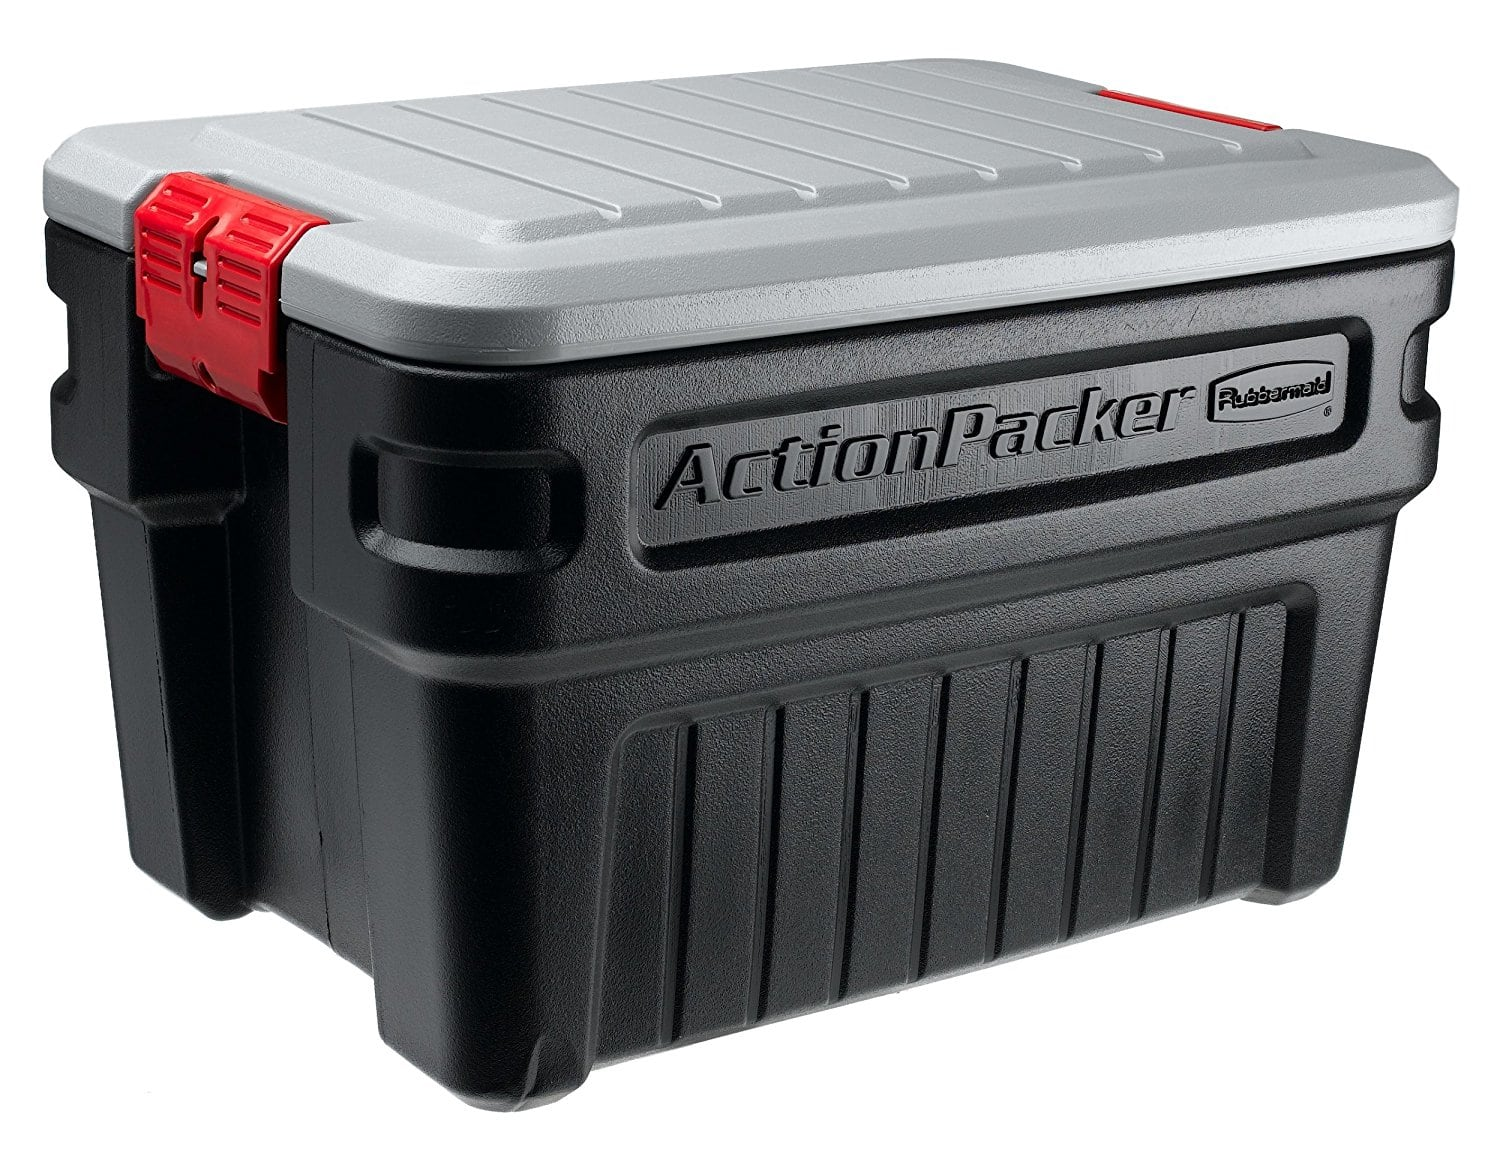 28 Gallon Rubbermaid 1172 ActionPacker Storage Box $28.24 + free s/h (ships in 1-2 month)